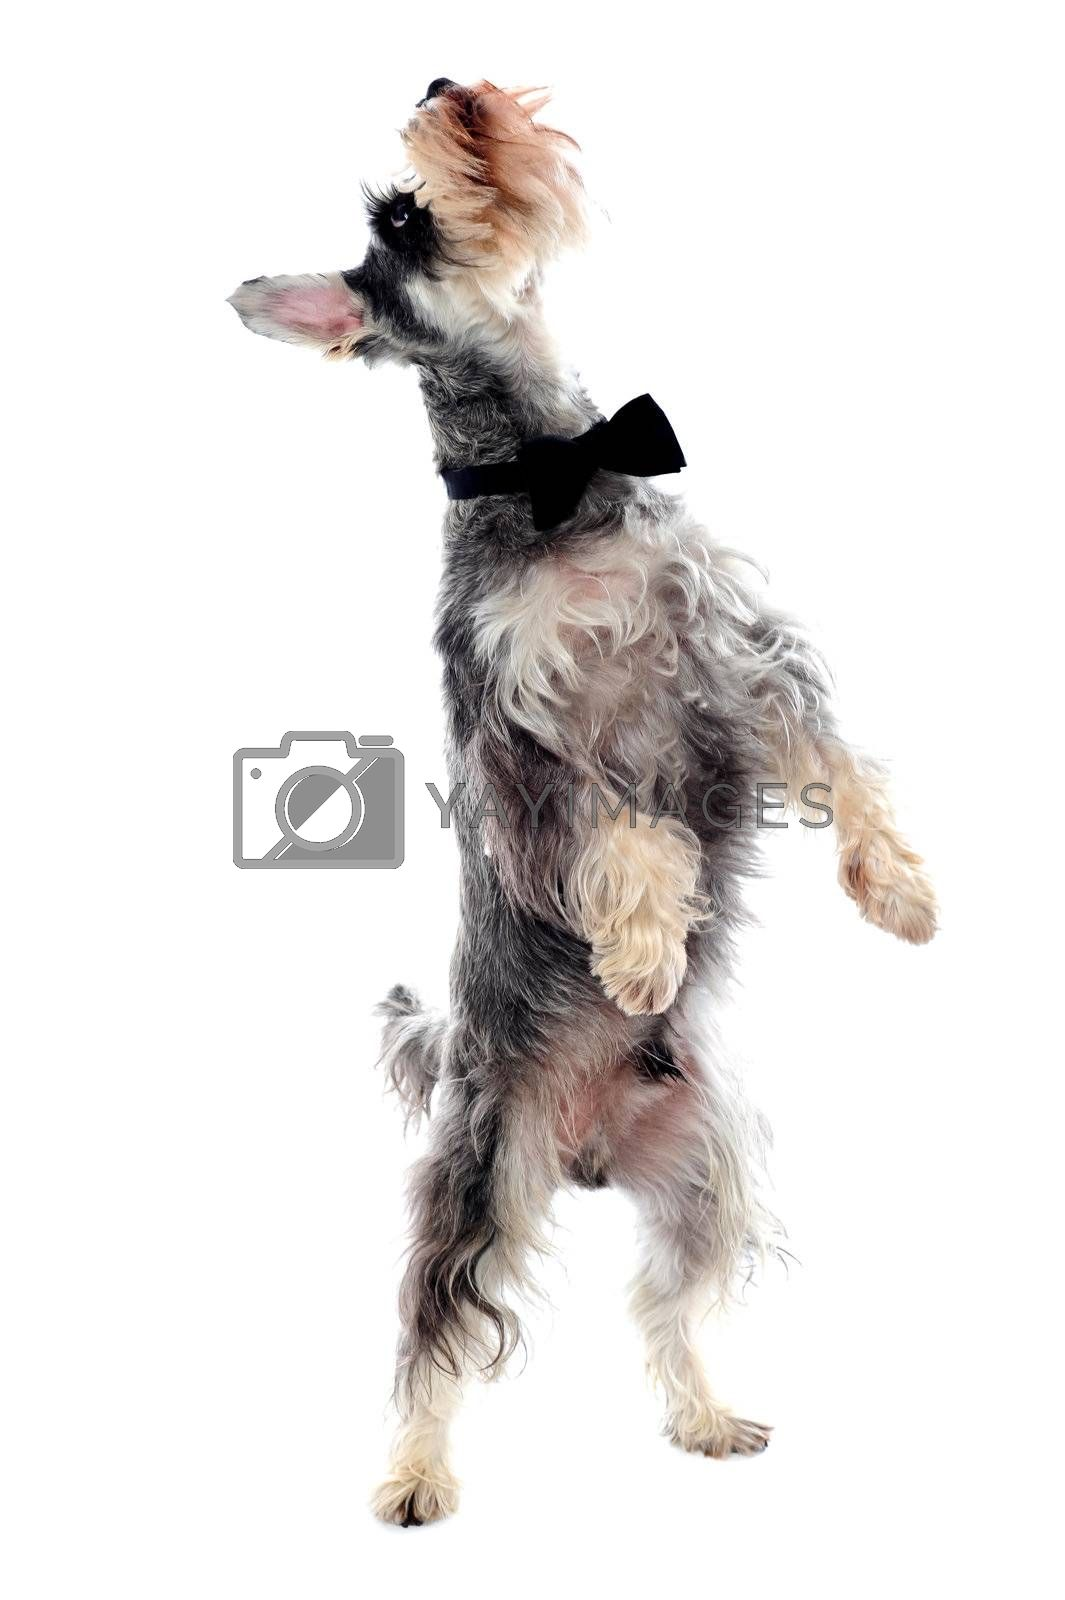 Schnauzer standing on two legs and looking upwards